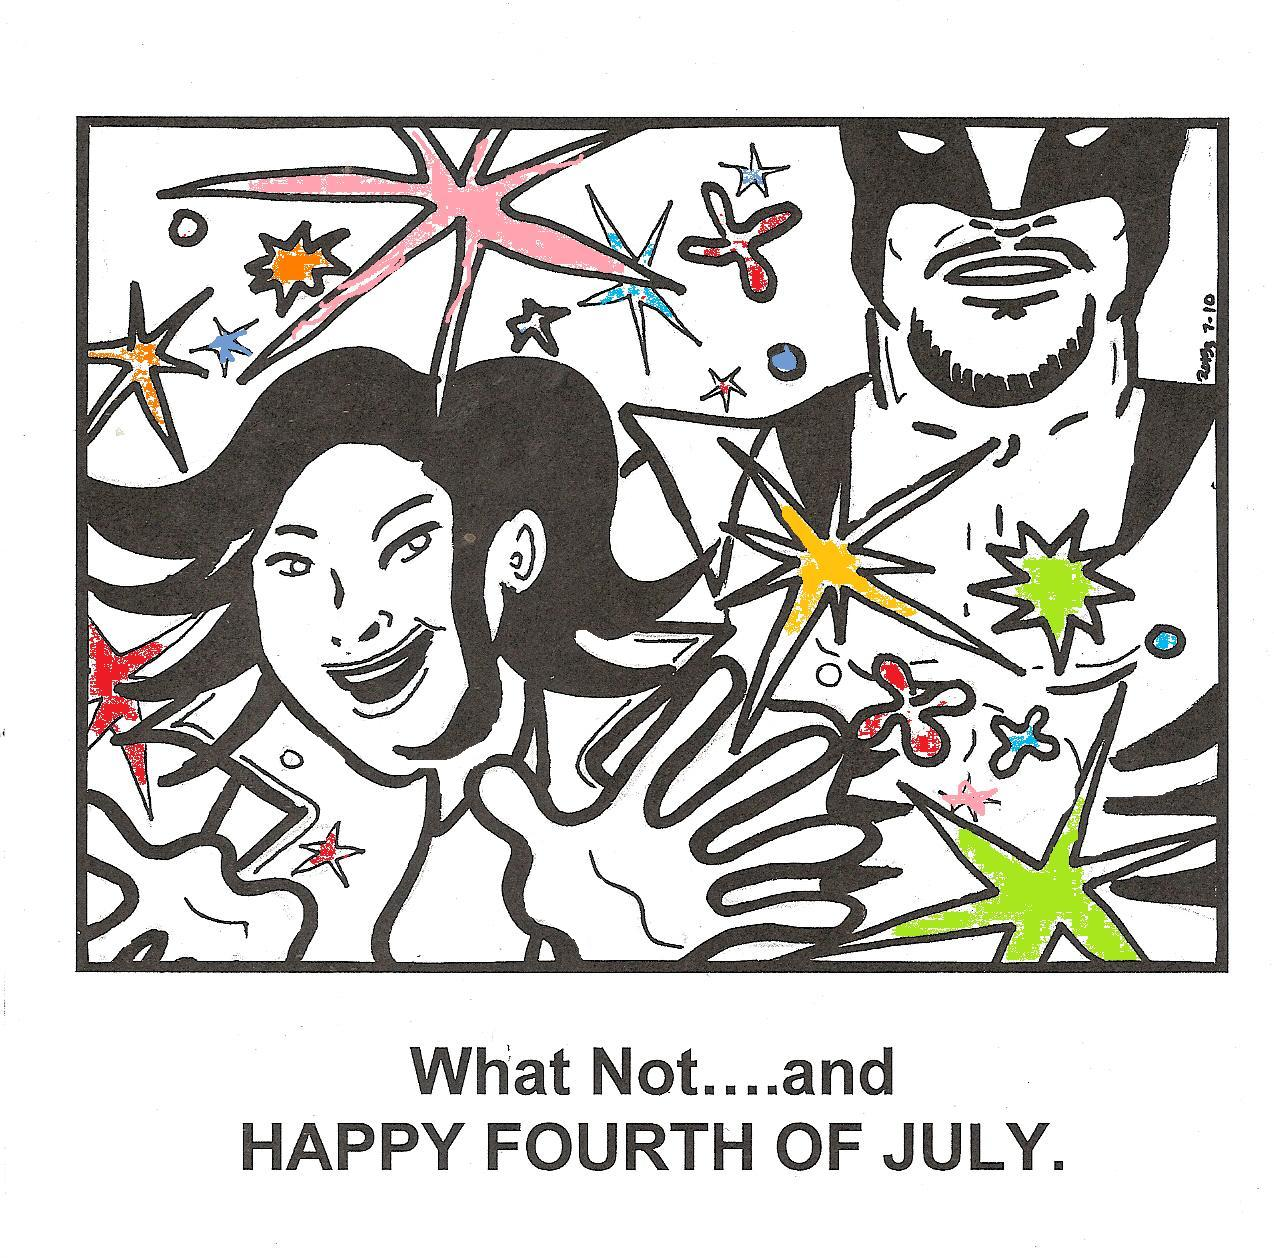 whatnot-and-happy-fourth-of-july